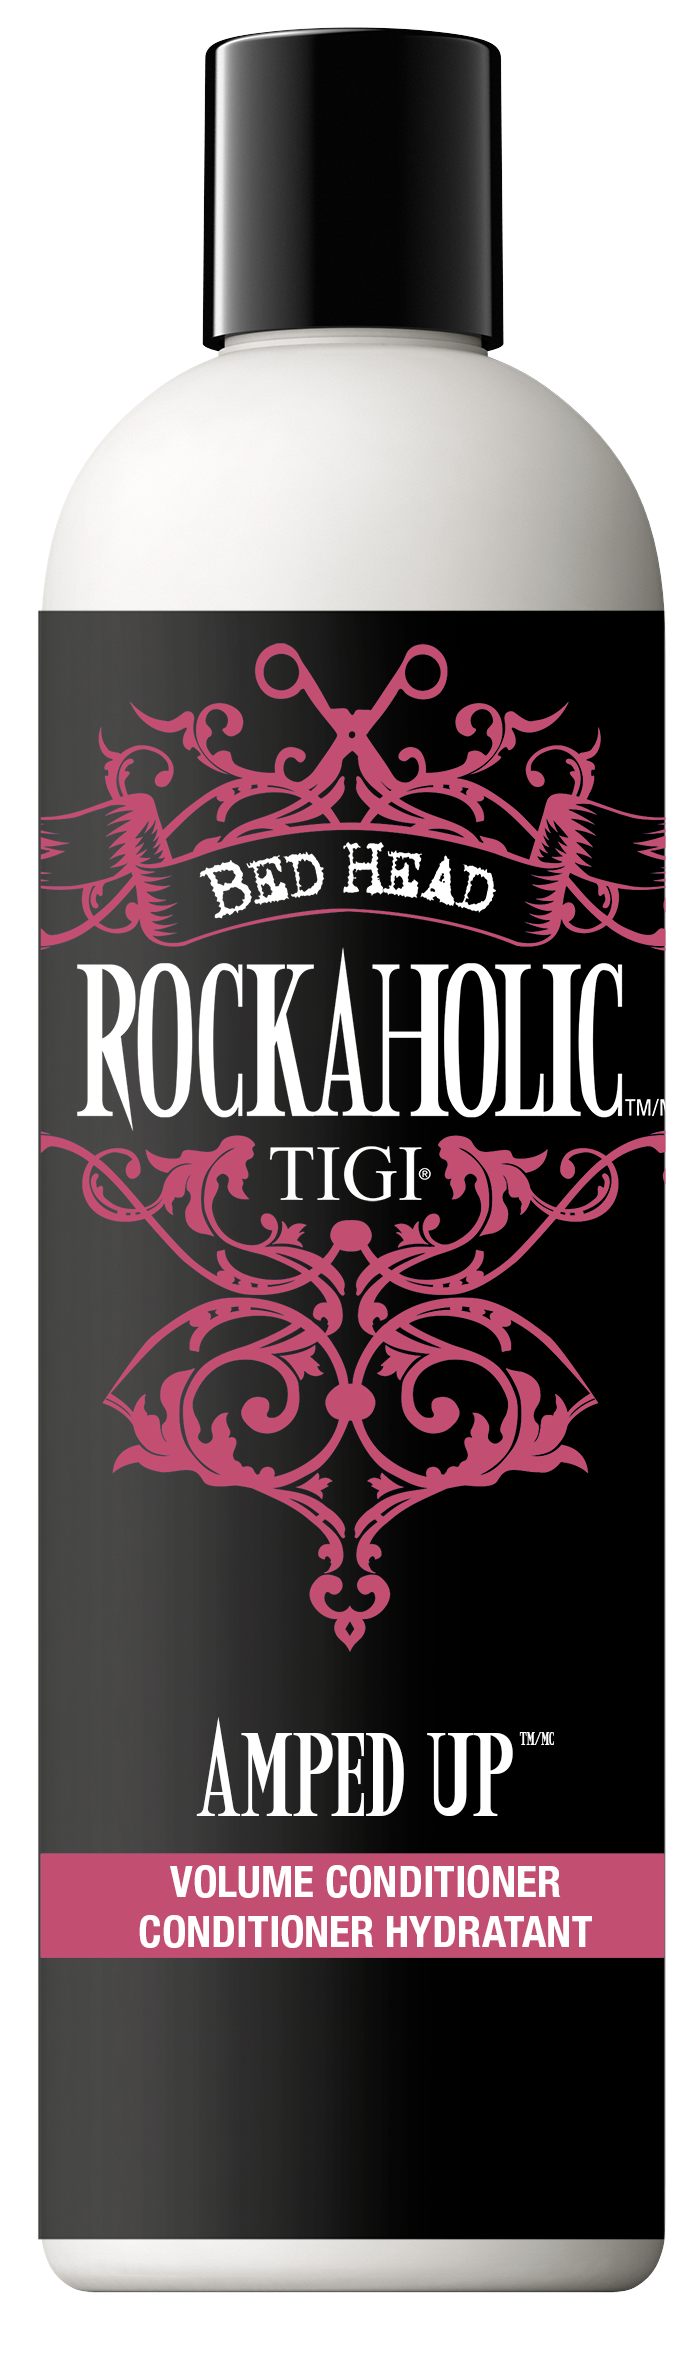 TIGI BED HEAD Rockaholic Amped Up Volume Conditioner Кондиционер для объёма (355 ml) 67150930